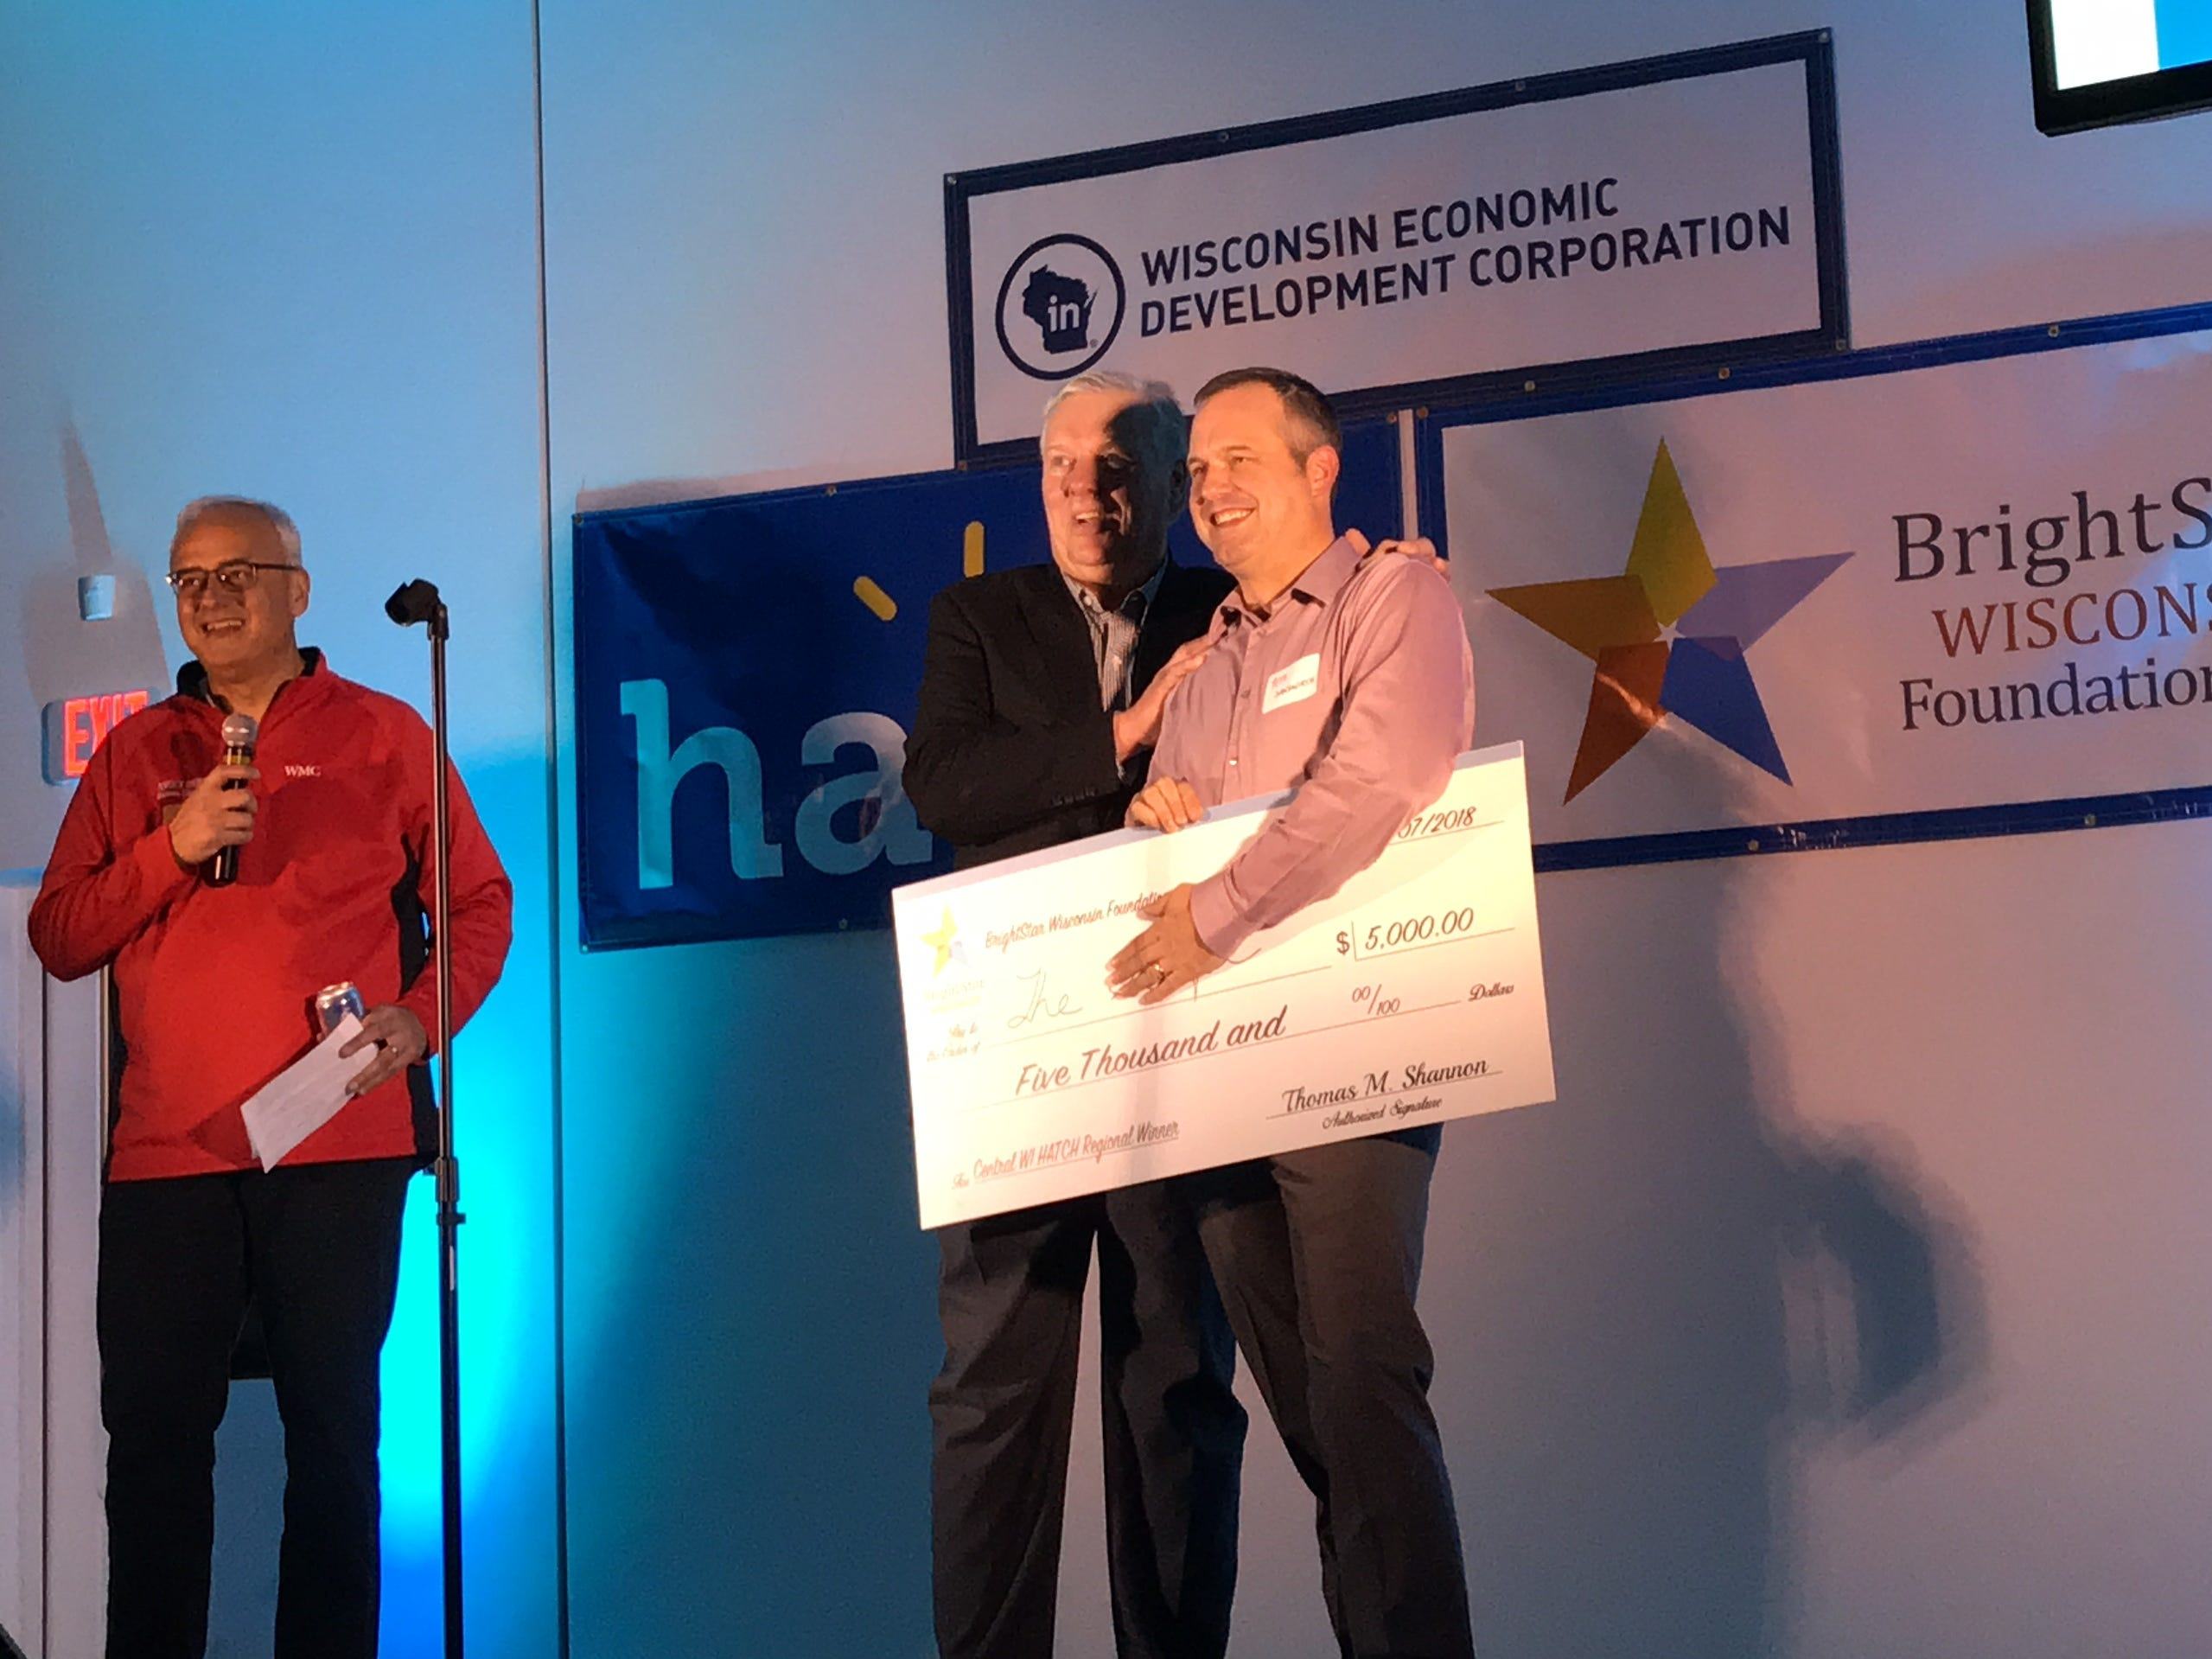 Pete Jungwirth won $5,000 for Amira Learning at the Hatch finale in central Wisconsin.